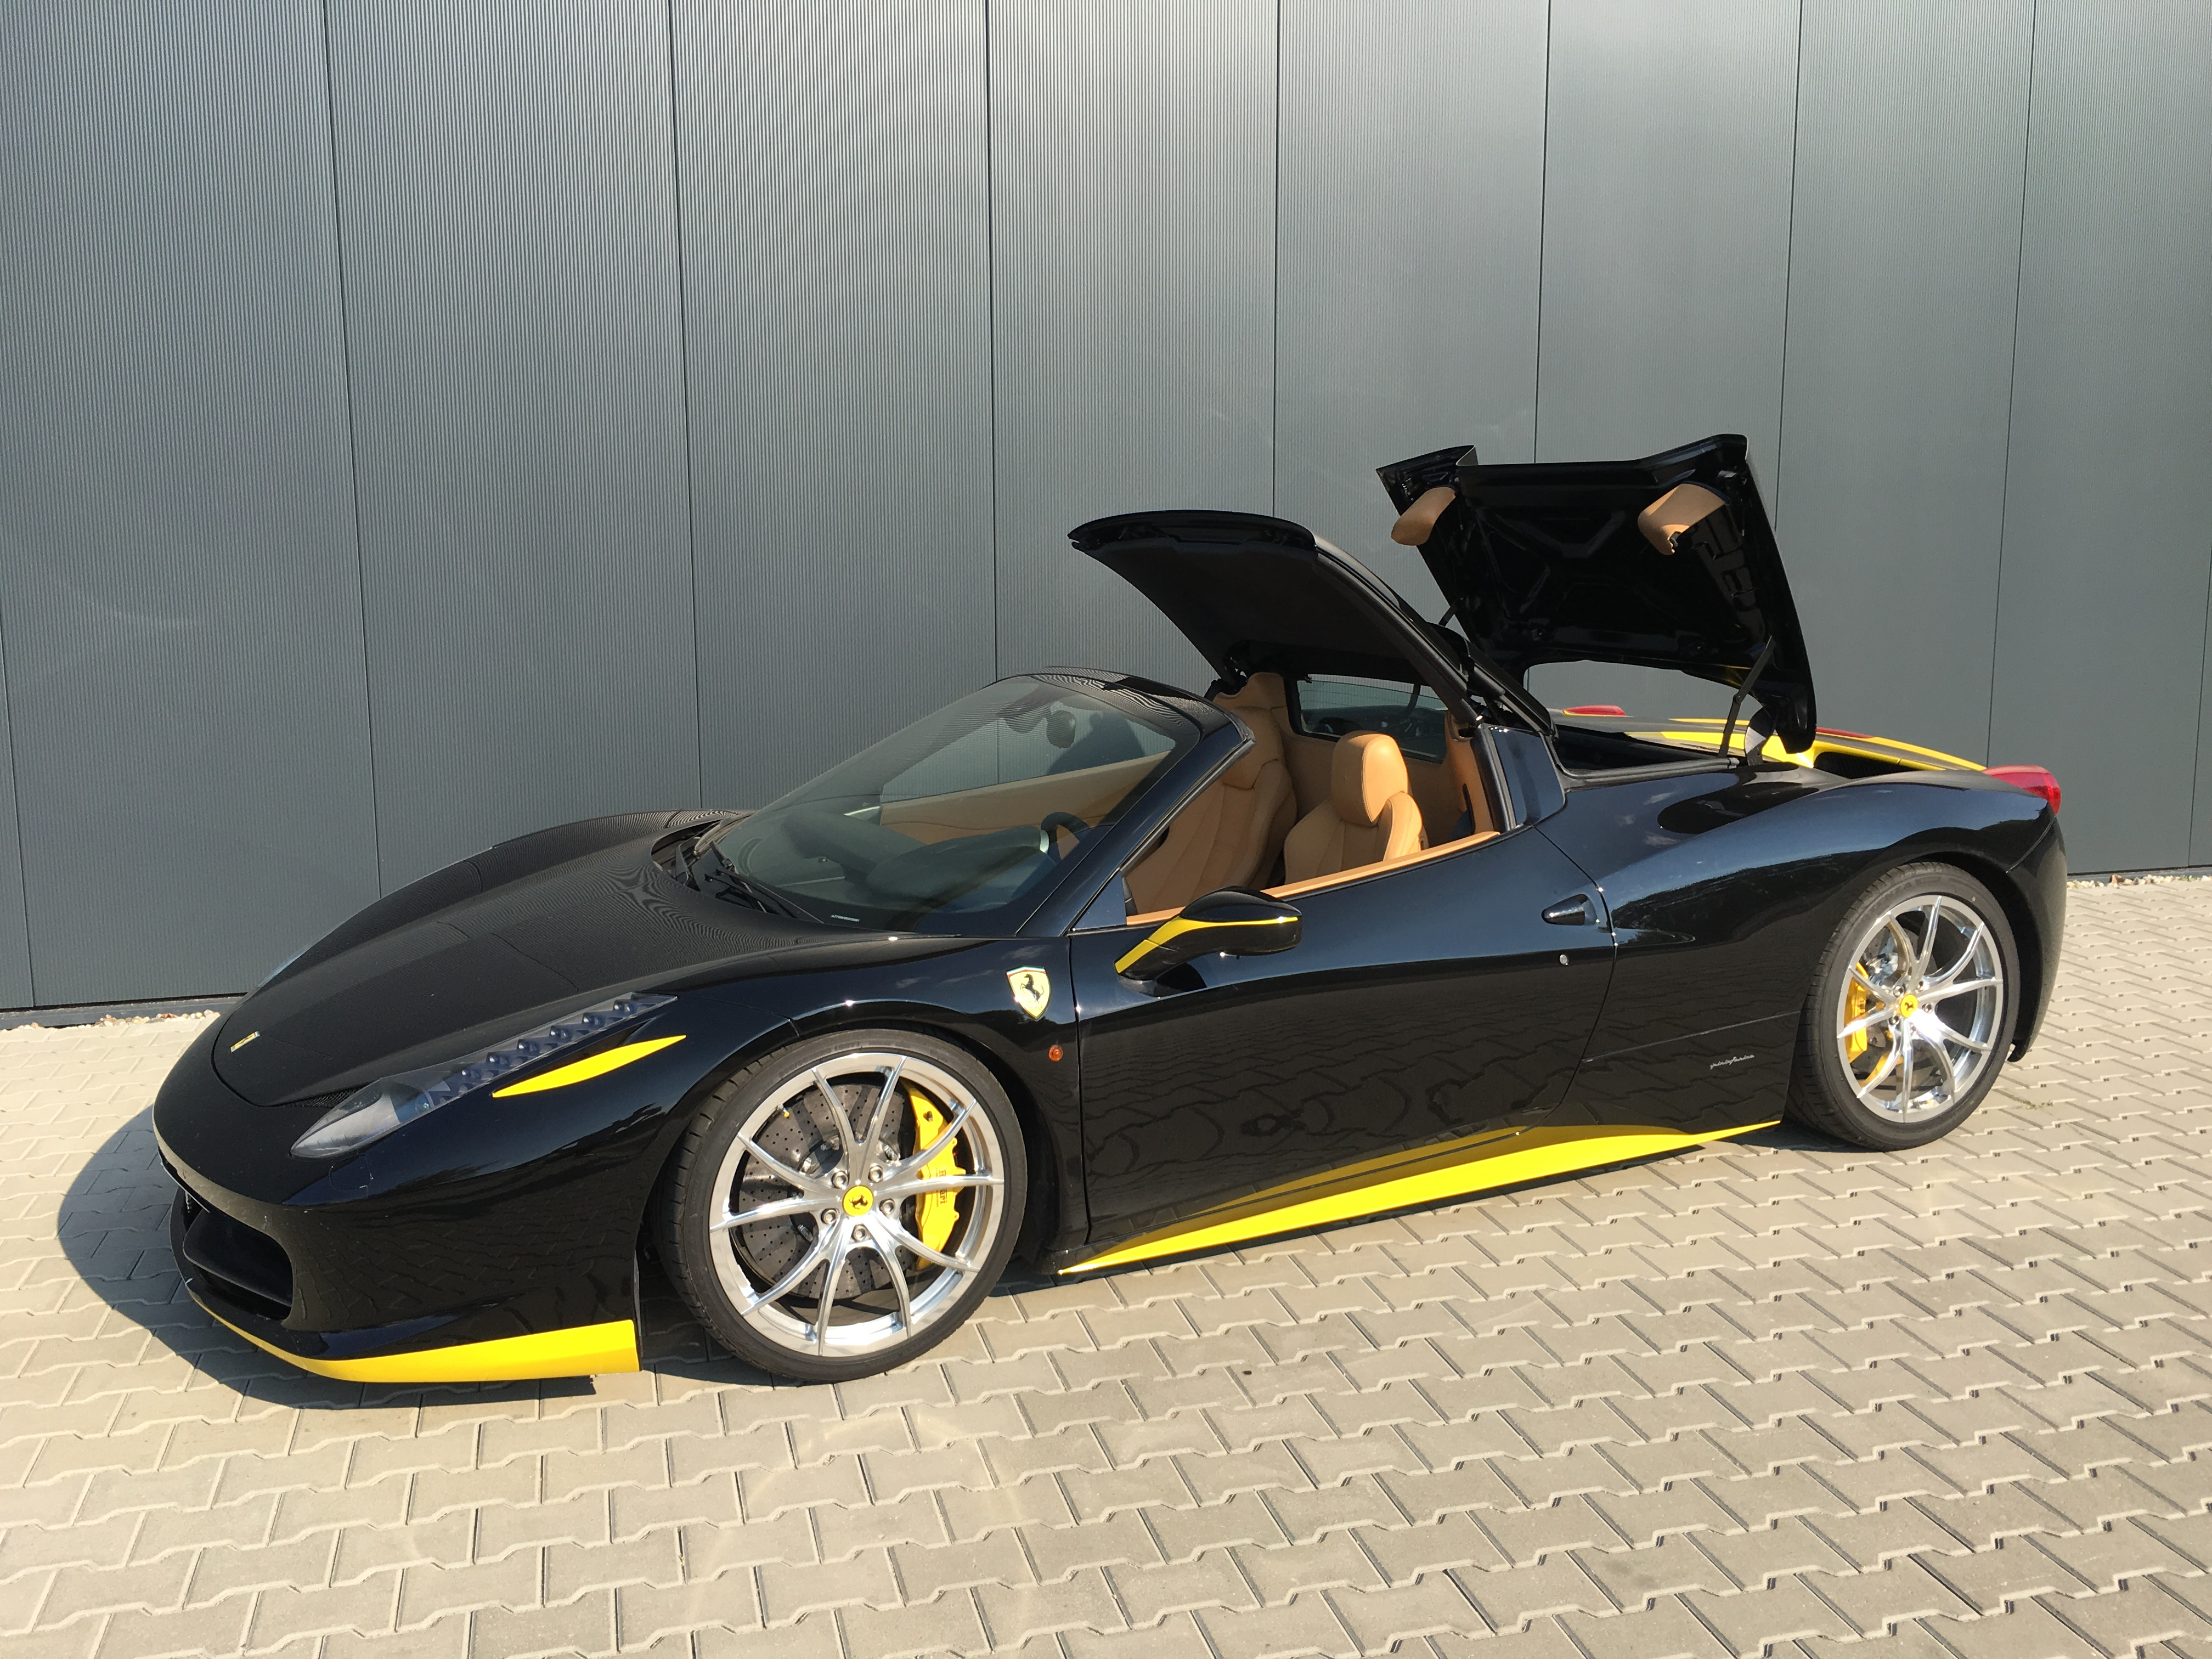 Smarttop Add On Soft Top Control For Ferrari 458 Spider Is Now Availablemods4cars Blog